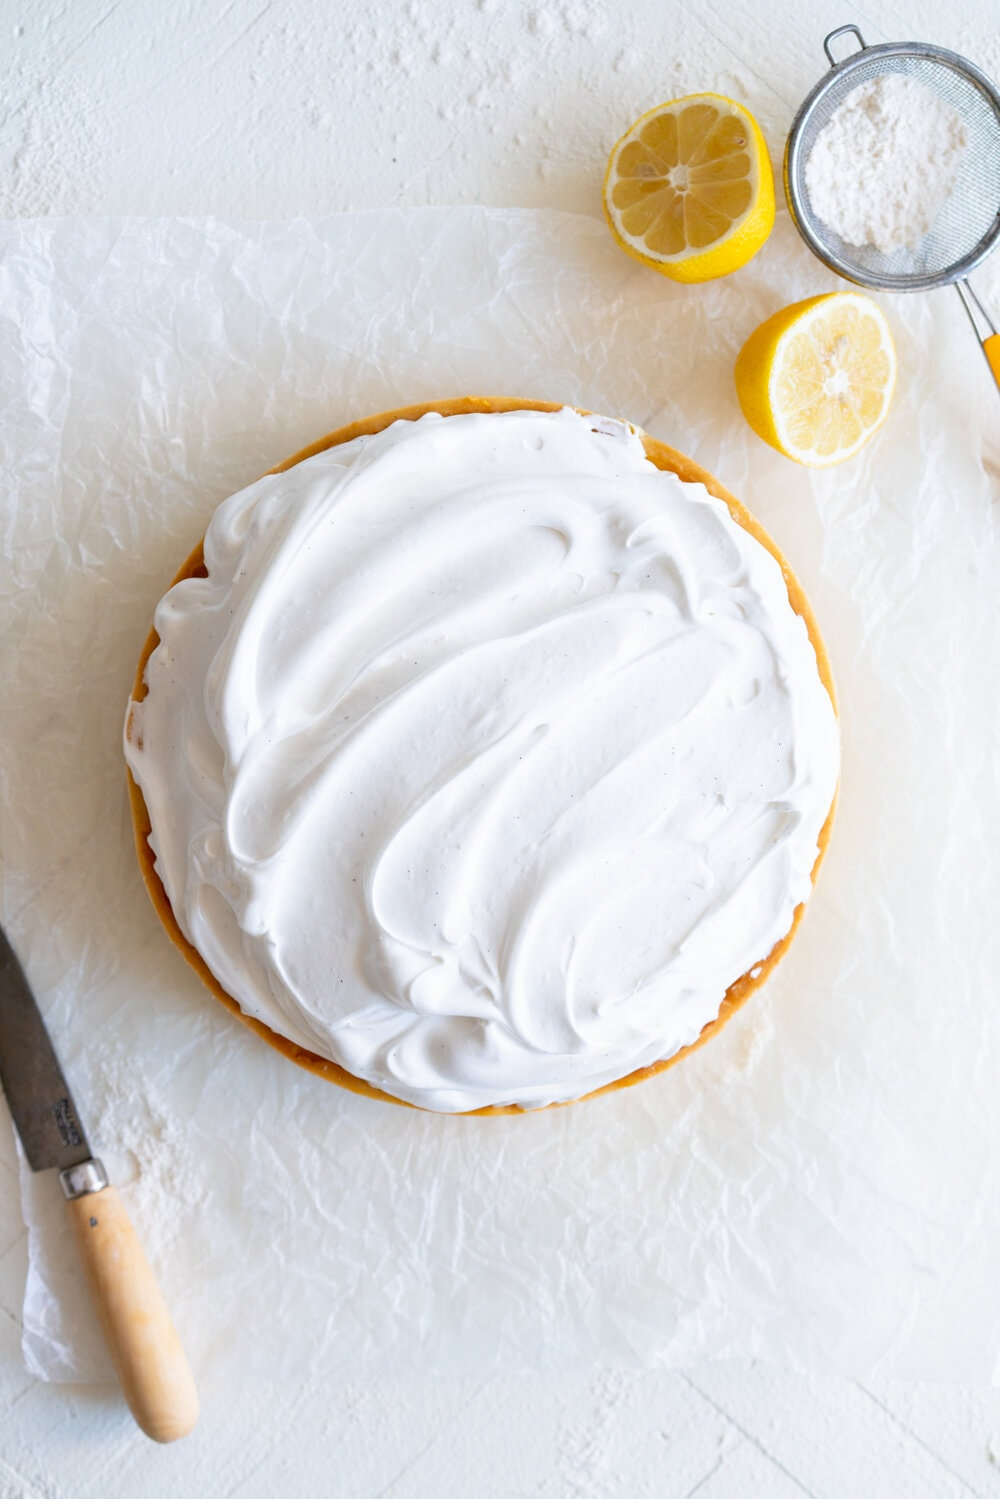 Lemon Meringue Tart with Torched Swiss Meringue. A sweet pastry case is filled with a punchy lemon filling and baked until it is silky and smooth in the oven. The tart is then finished in the oven, and Swiss Meringue is swooped onto the top and torched to perfection. #lemonmeringuetart #lemontart #swissmeringue